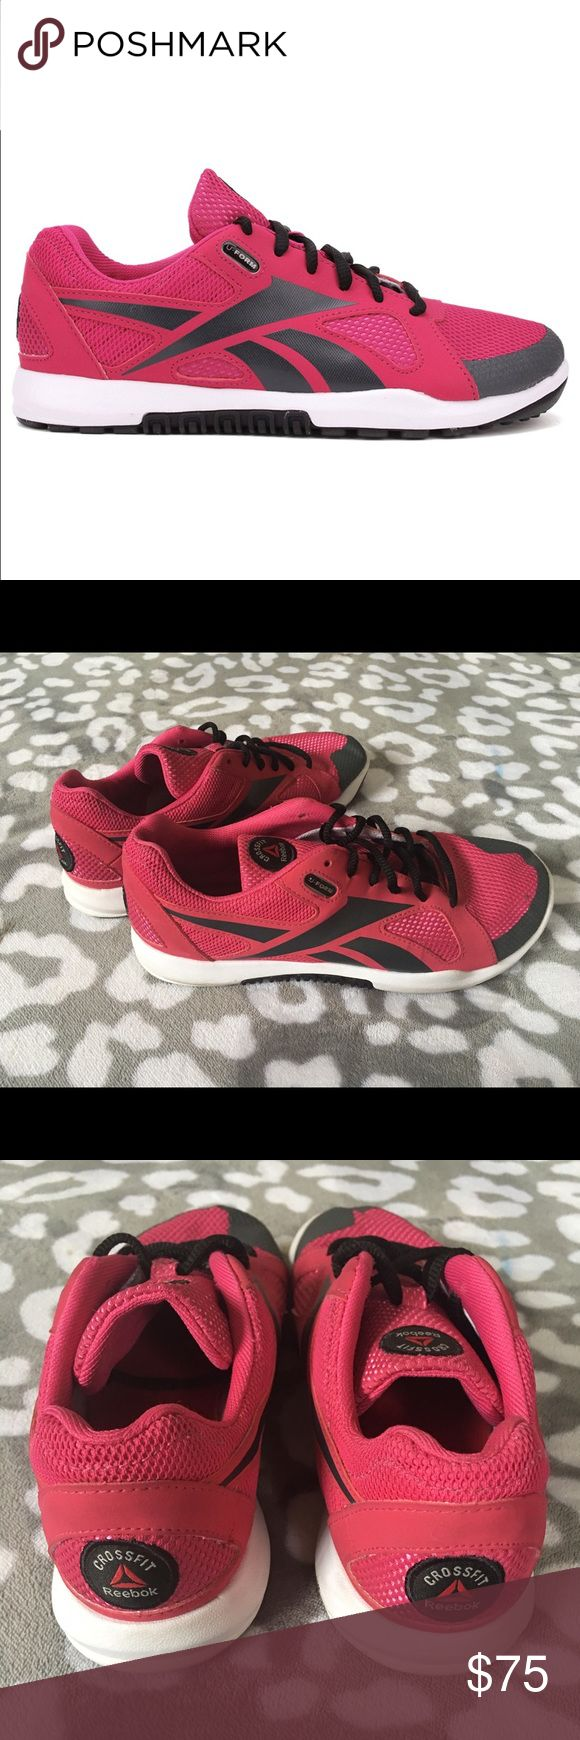 Reebok CrossFit Nano Cross Training Shoes 8.5 I bought these for $120 and only wore them once. They are great for weight training. EUC. Like new! Reebok CrossFit Shoes Athletic Shoes